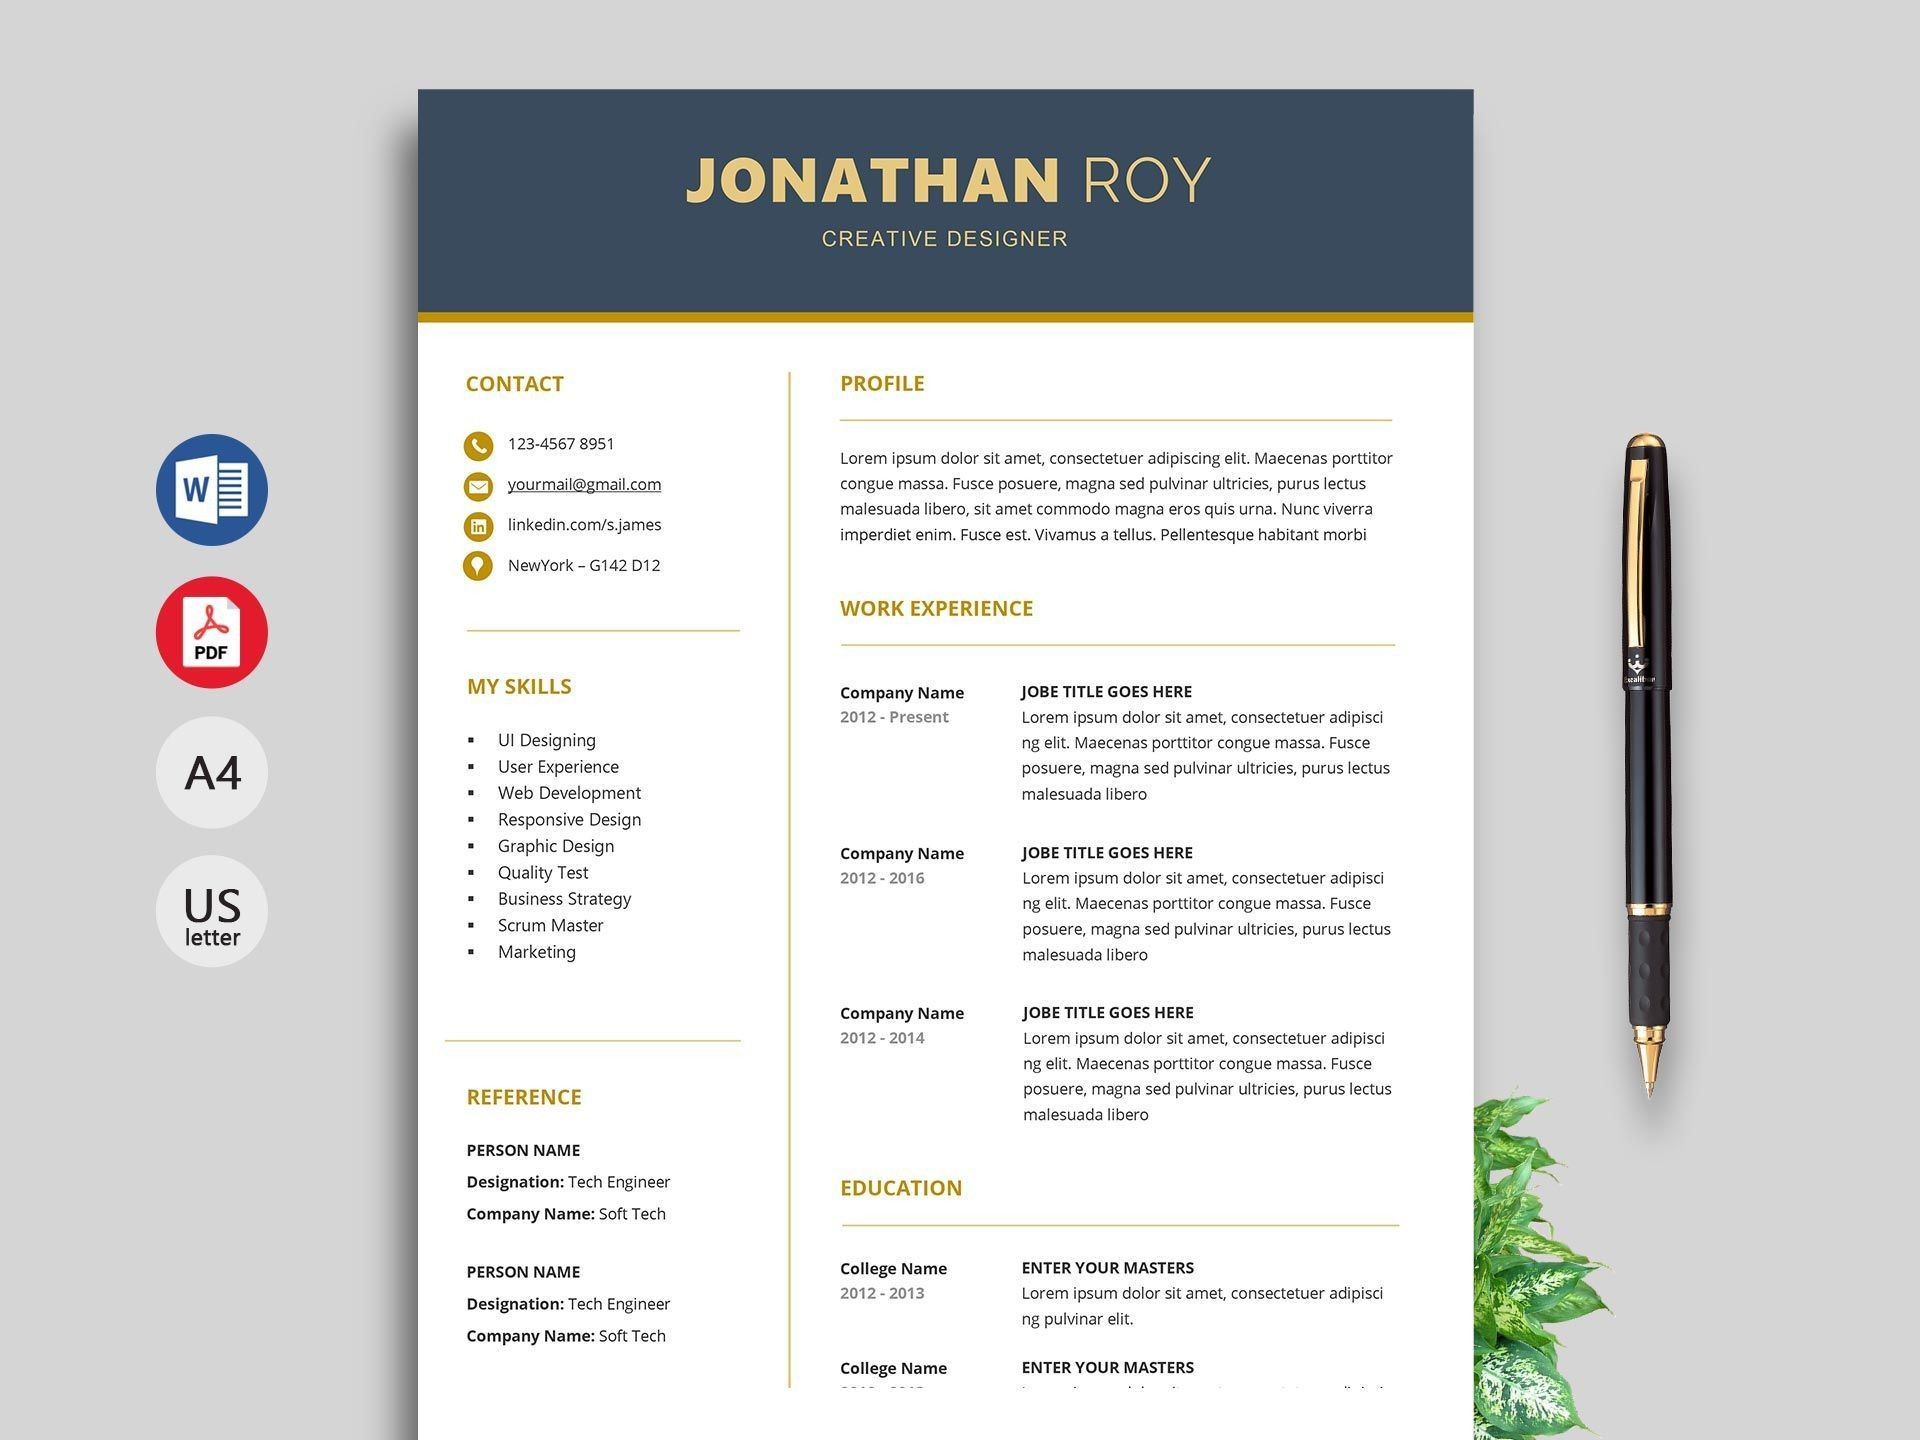 001 Best Professional Resume Template Word Free Download High Resolution  Cv 2020 With Photo1920